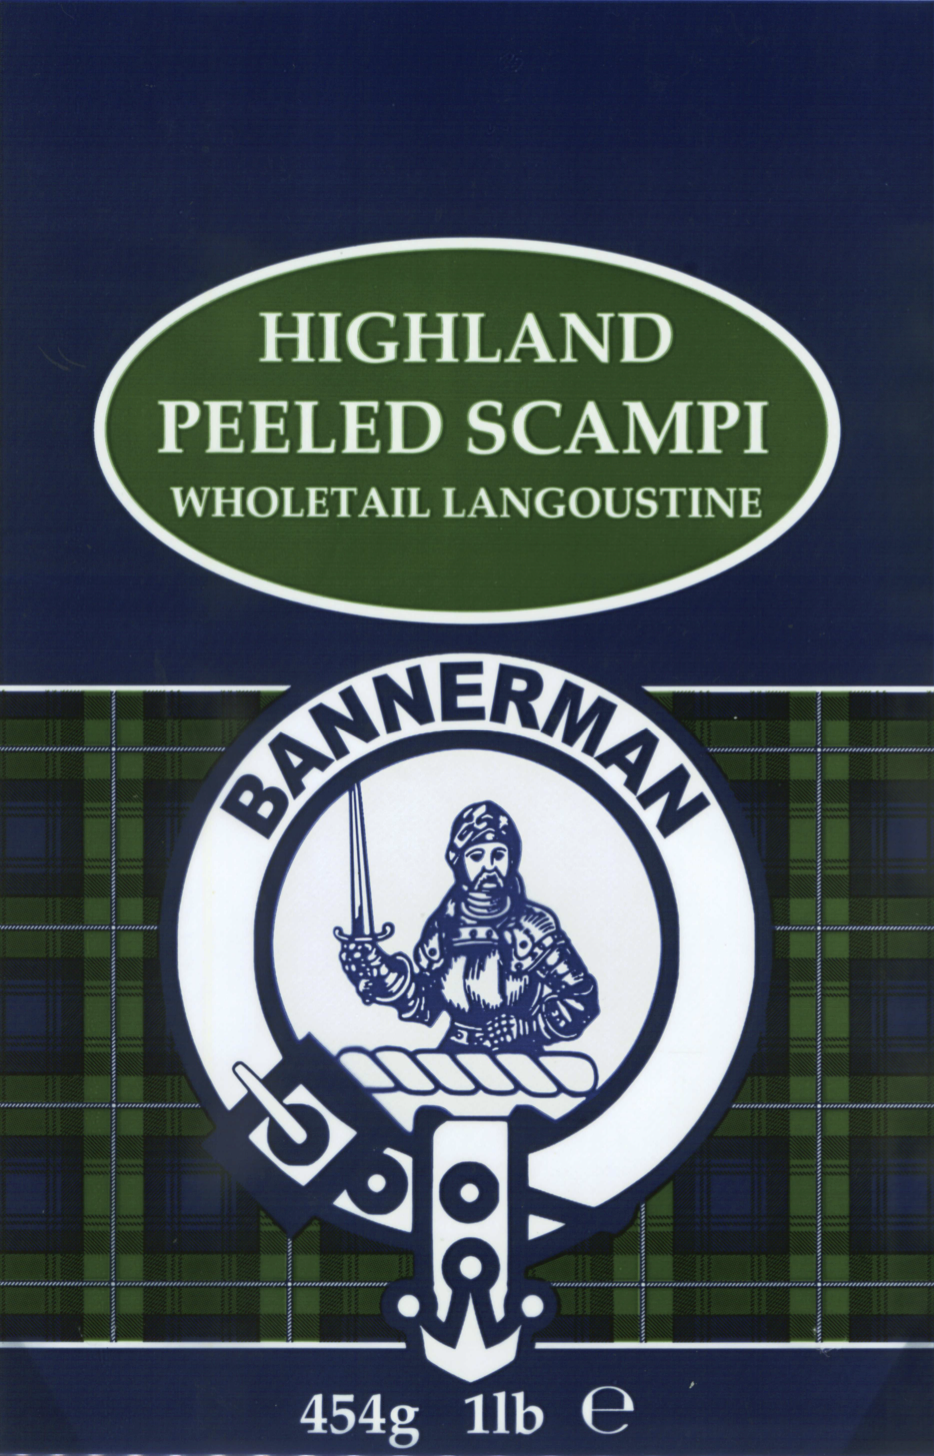 Highland Peeled Scampi